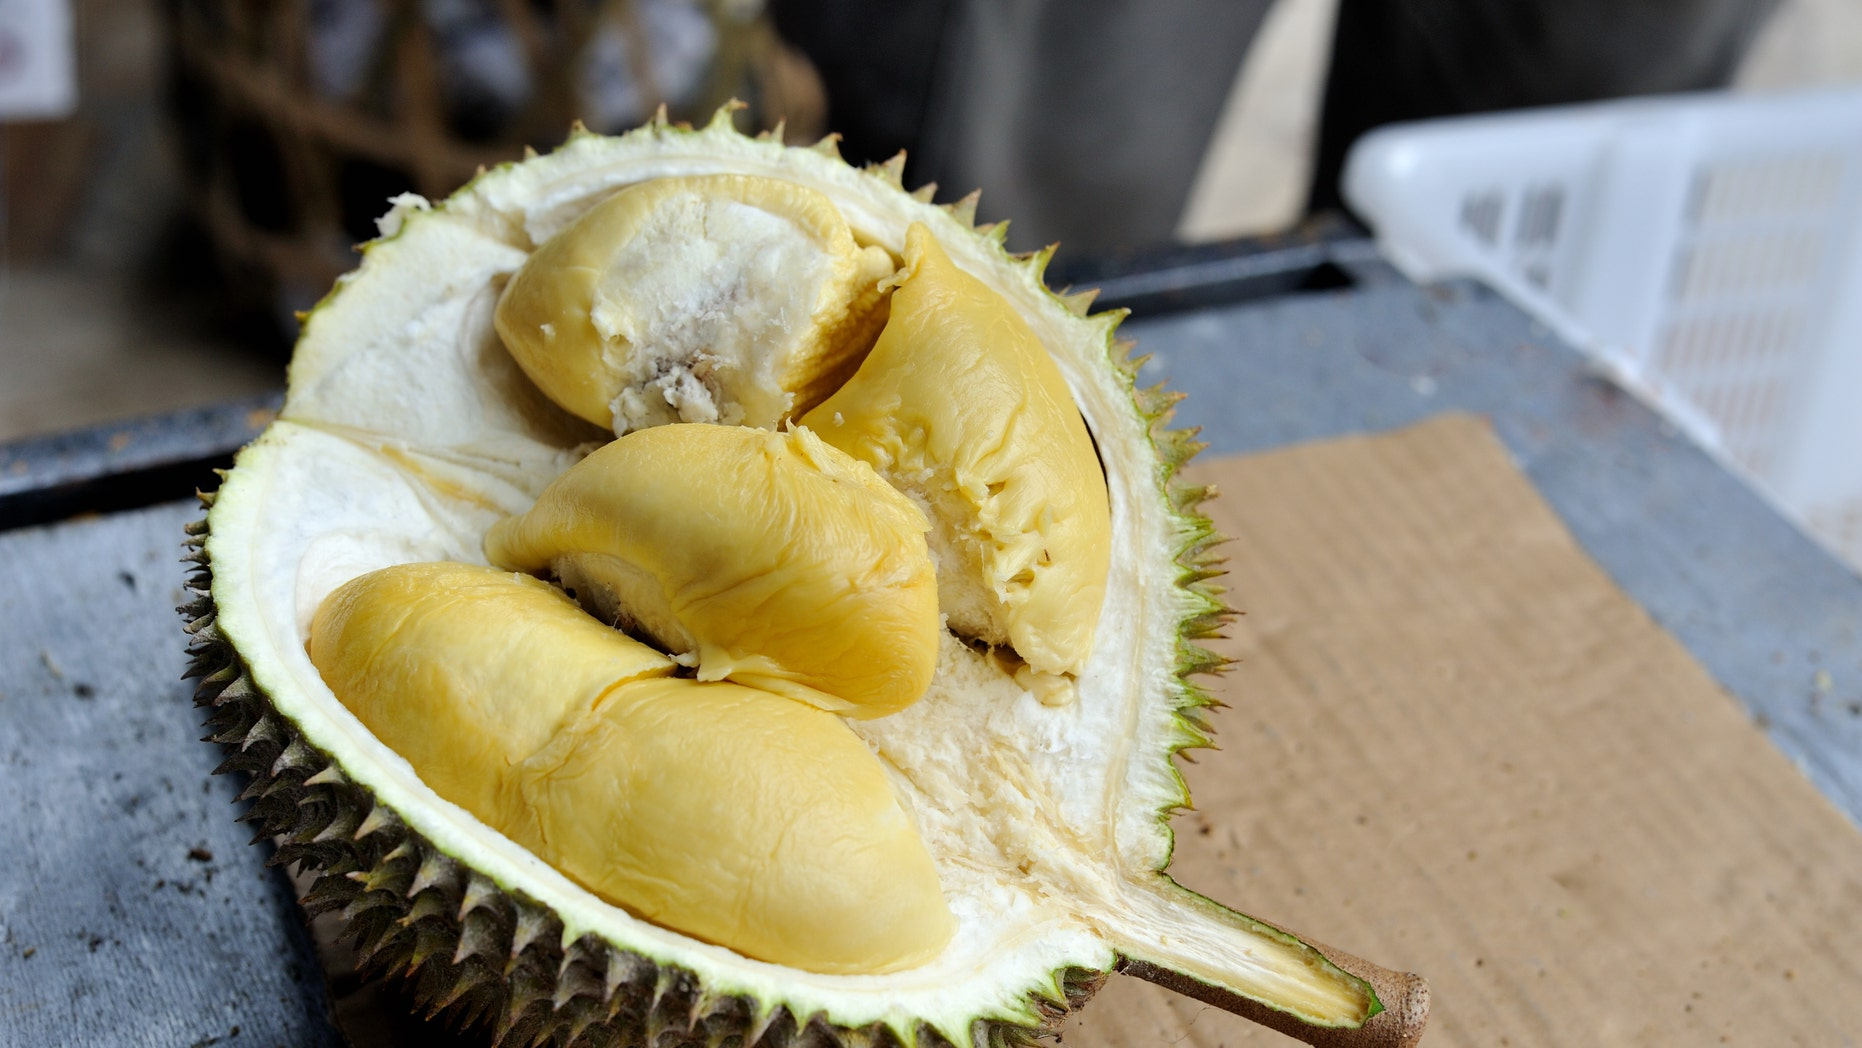 Durian fruit is just one of several common foods and products that could lead to a failed drug test.